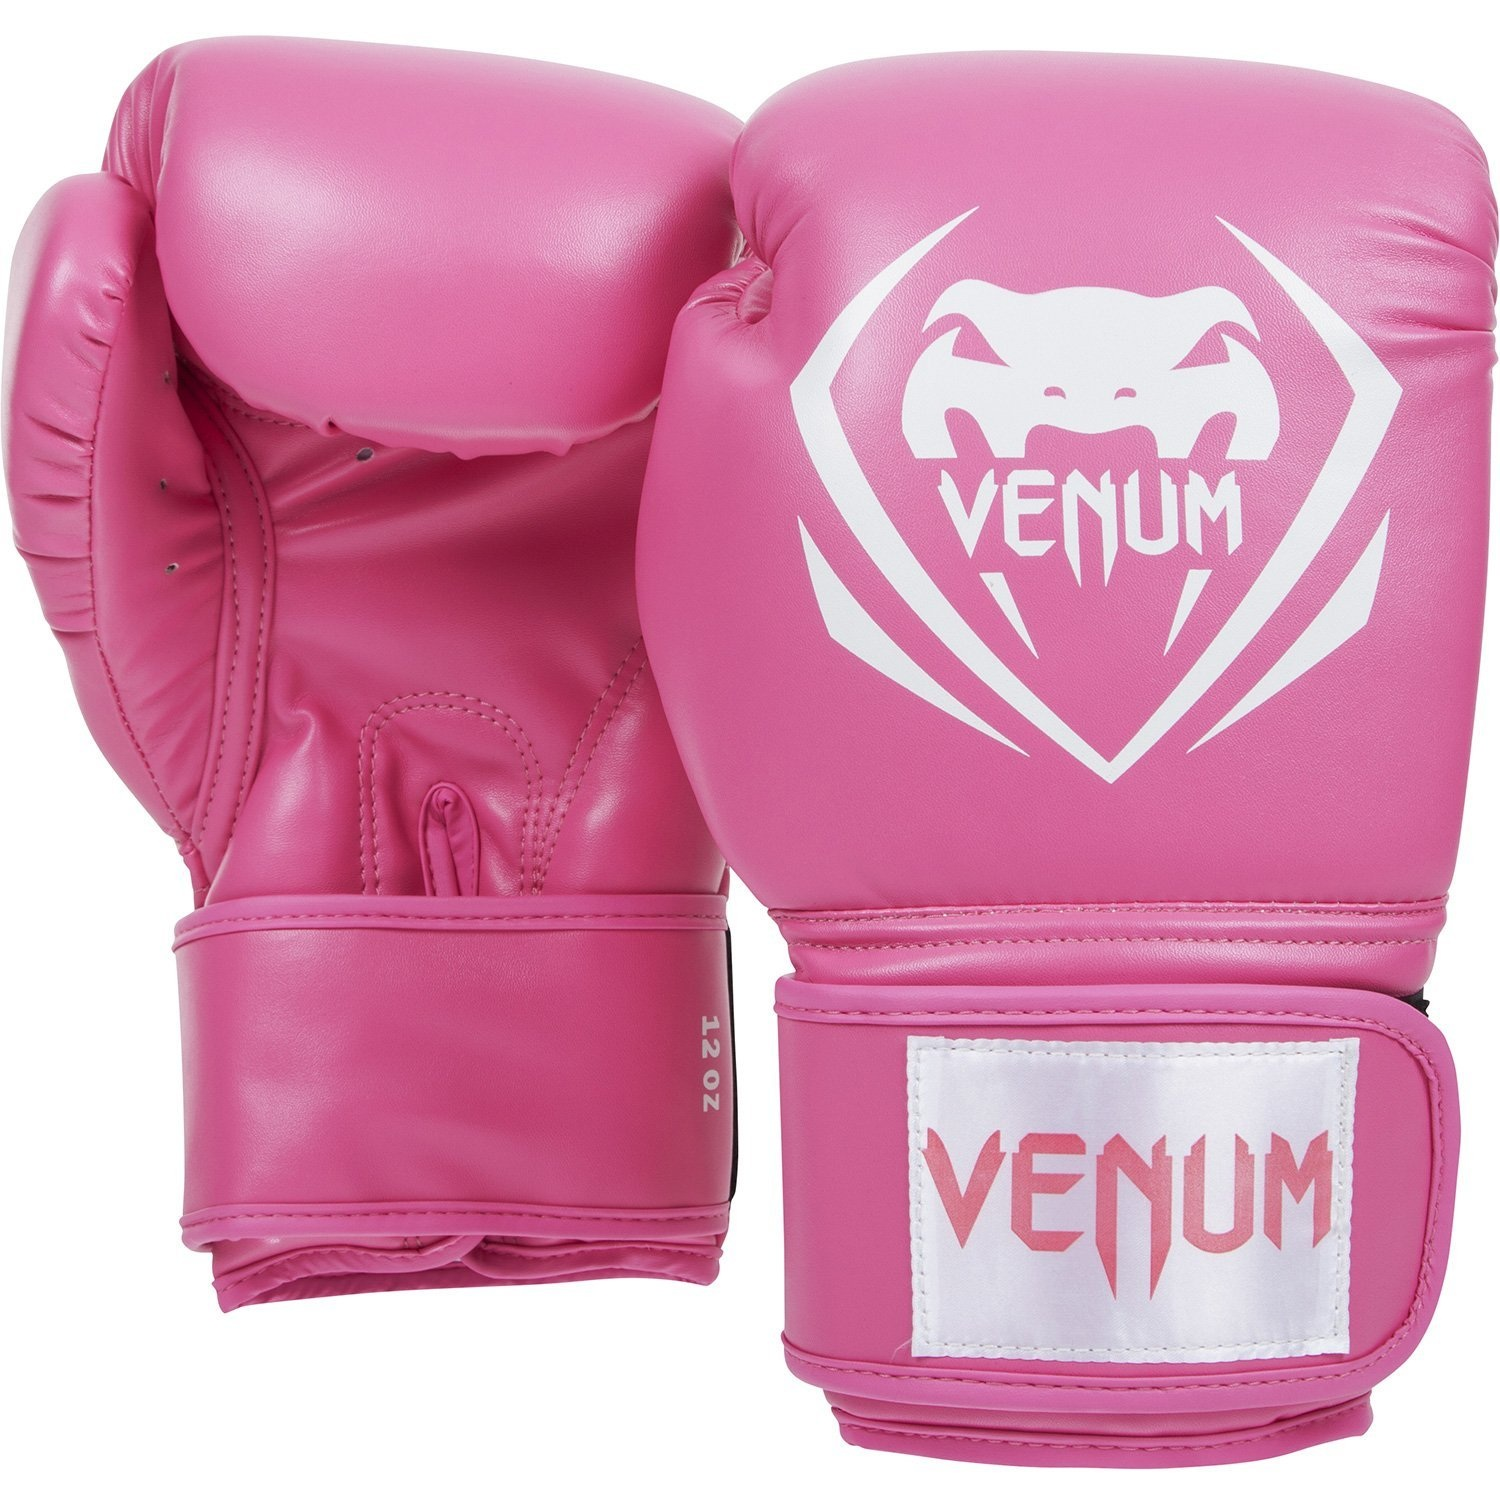 Venum Contender Sports Boxing Gloves